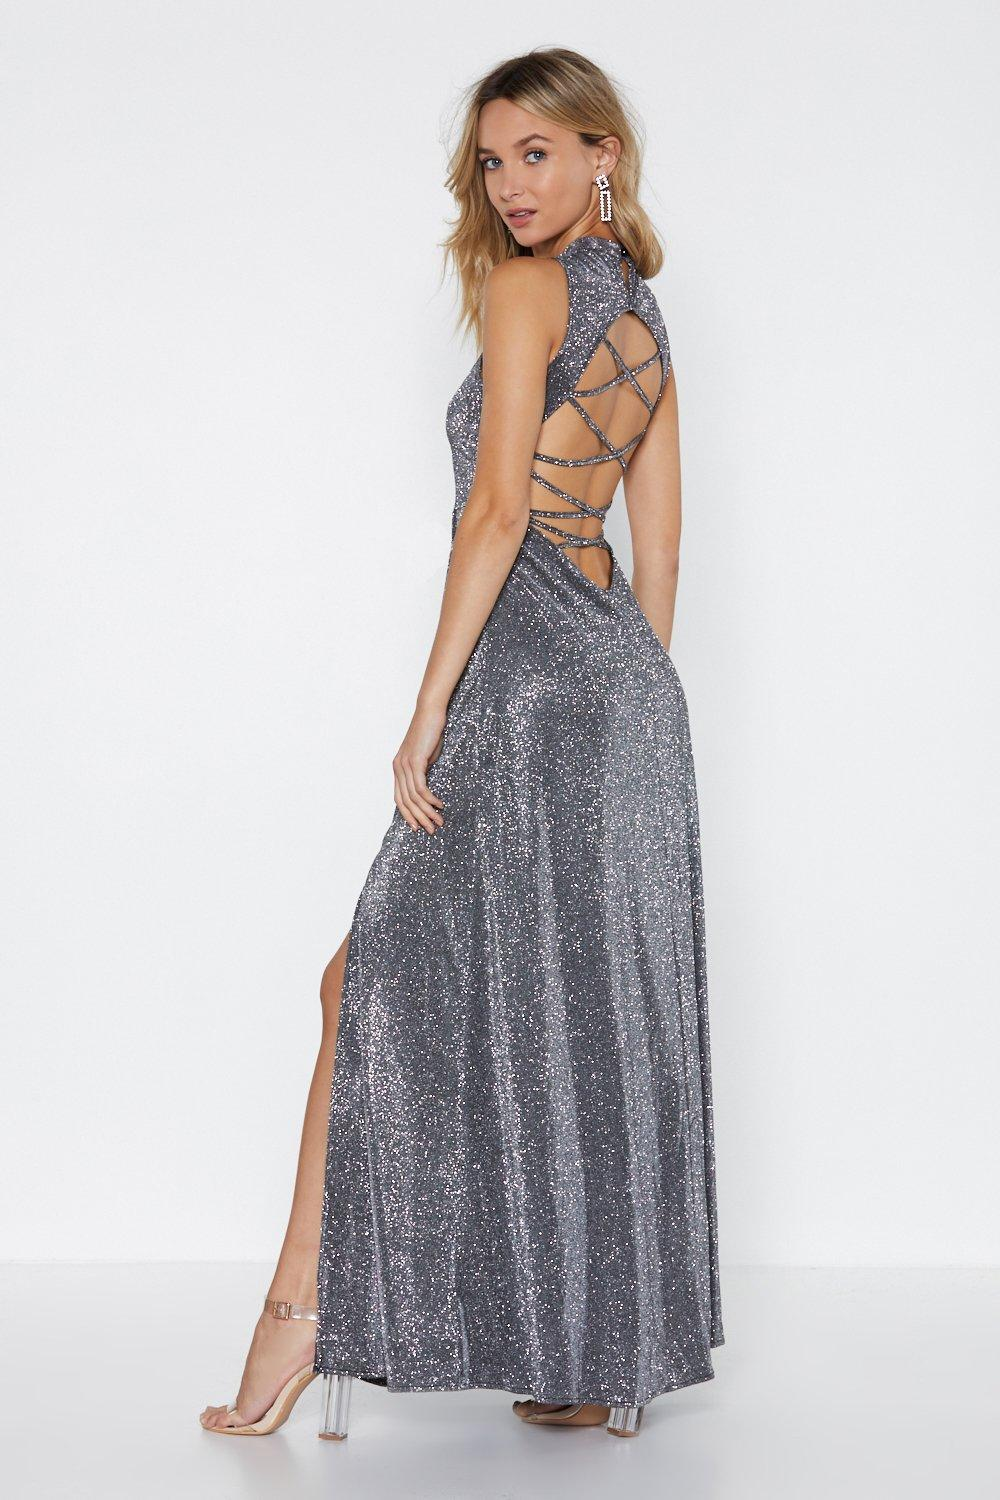 First Glitter Dress Maxi Nasty Gal At Clothes Shop Date FBUF7xv